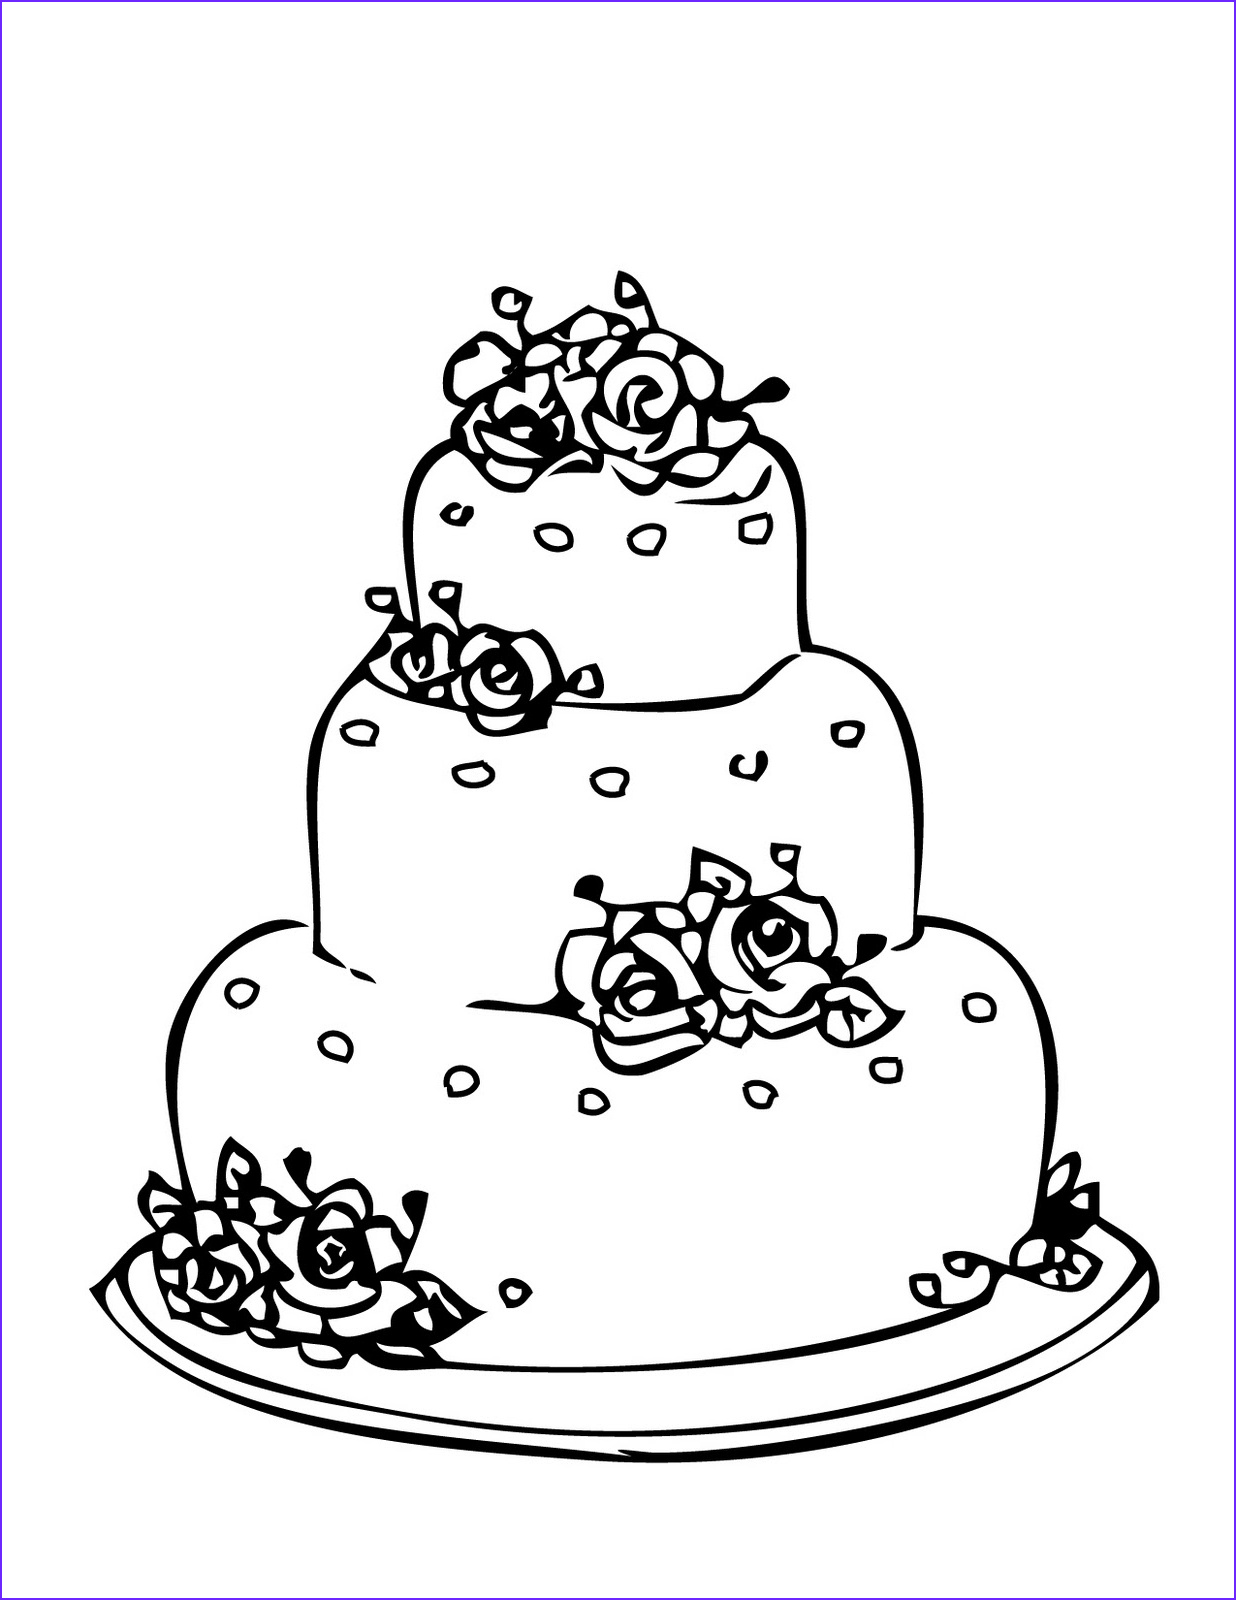 Wedding Cake Coloring New Photos Wedding Cake Coloring Page For Drawing 1